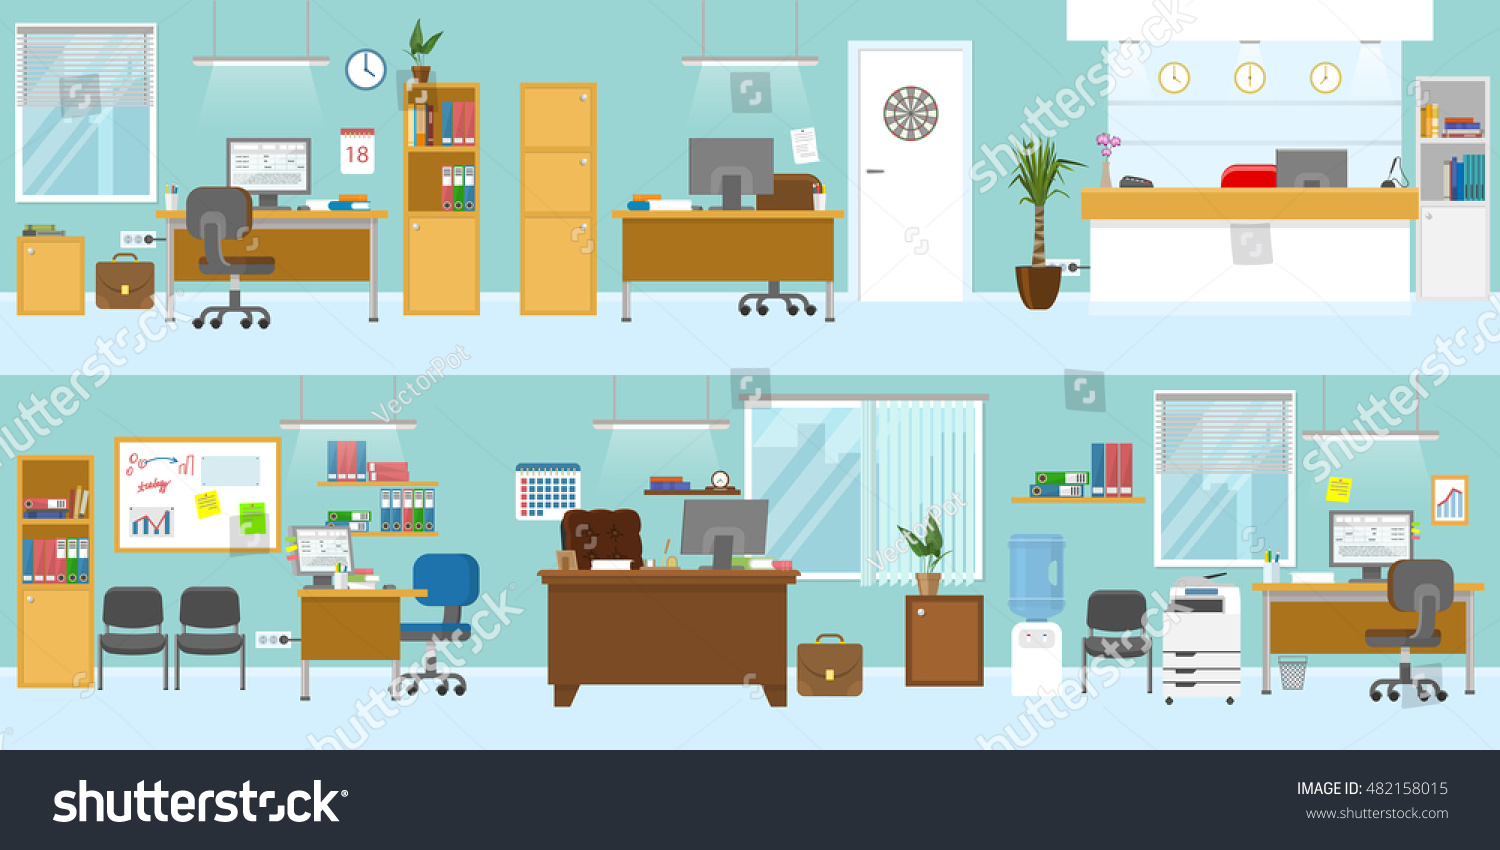 Office Interiors Template With Wooden Furniture Reception Workplace For  Boss Ceiling Light Blue Walls Isolated Vector